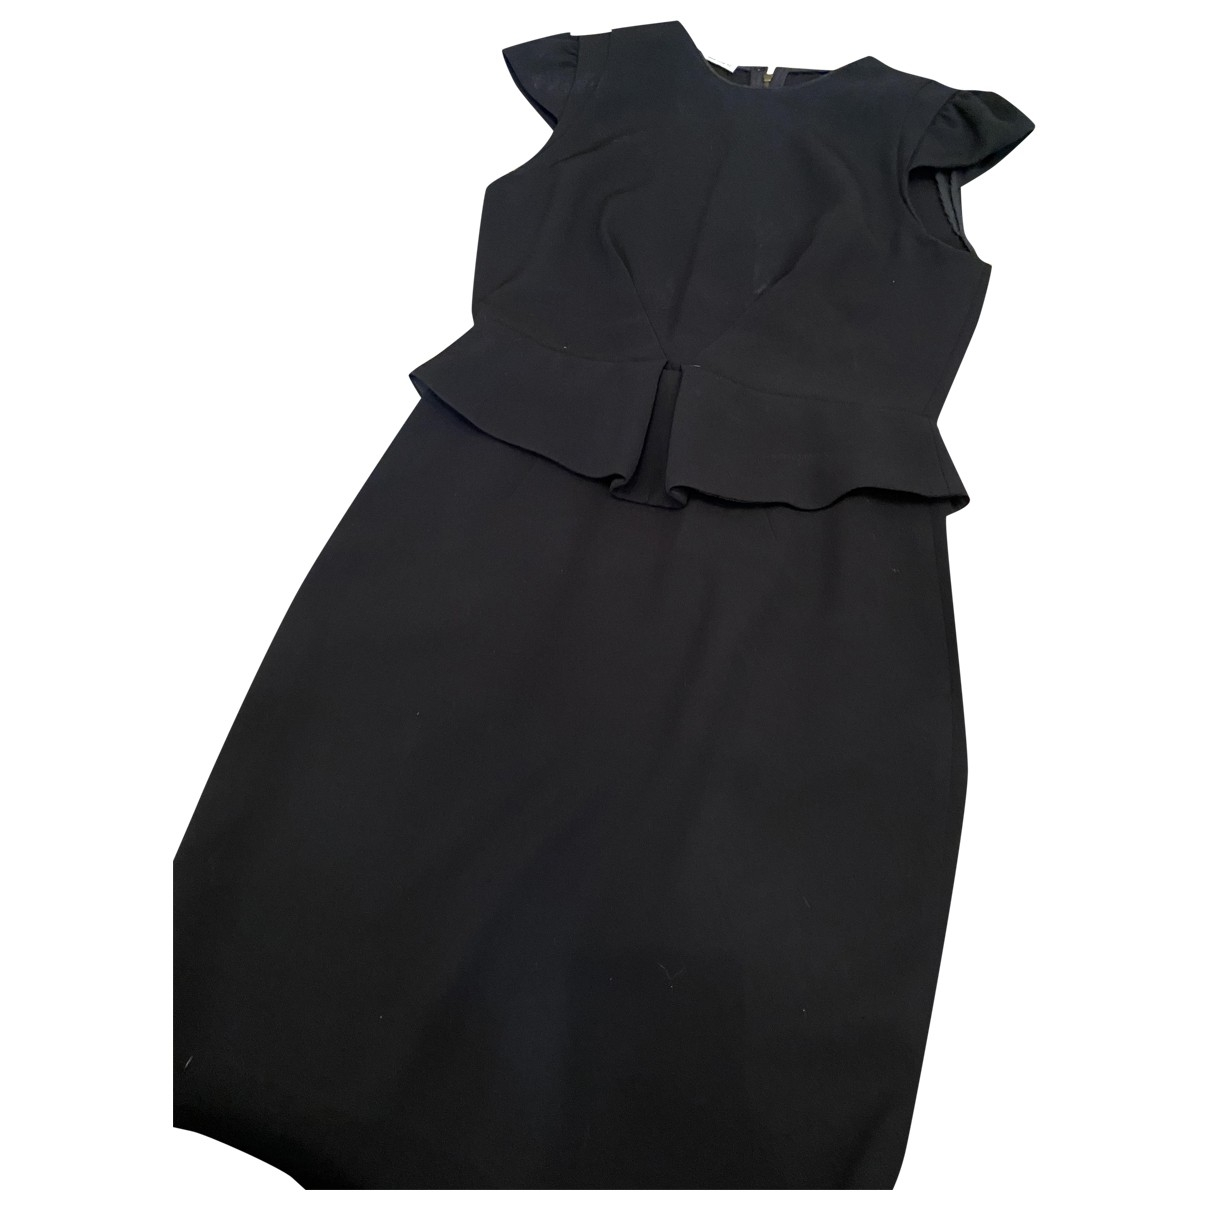 Miu Miu \N Black Cotton dress for Women 42 IT